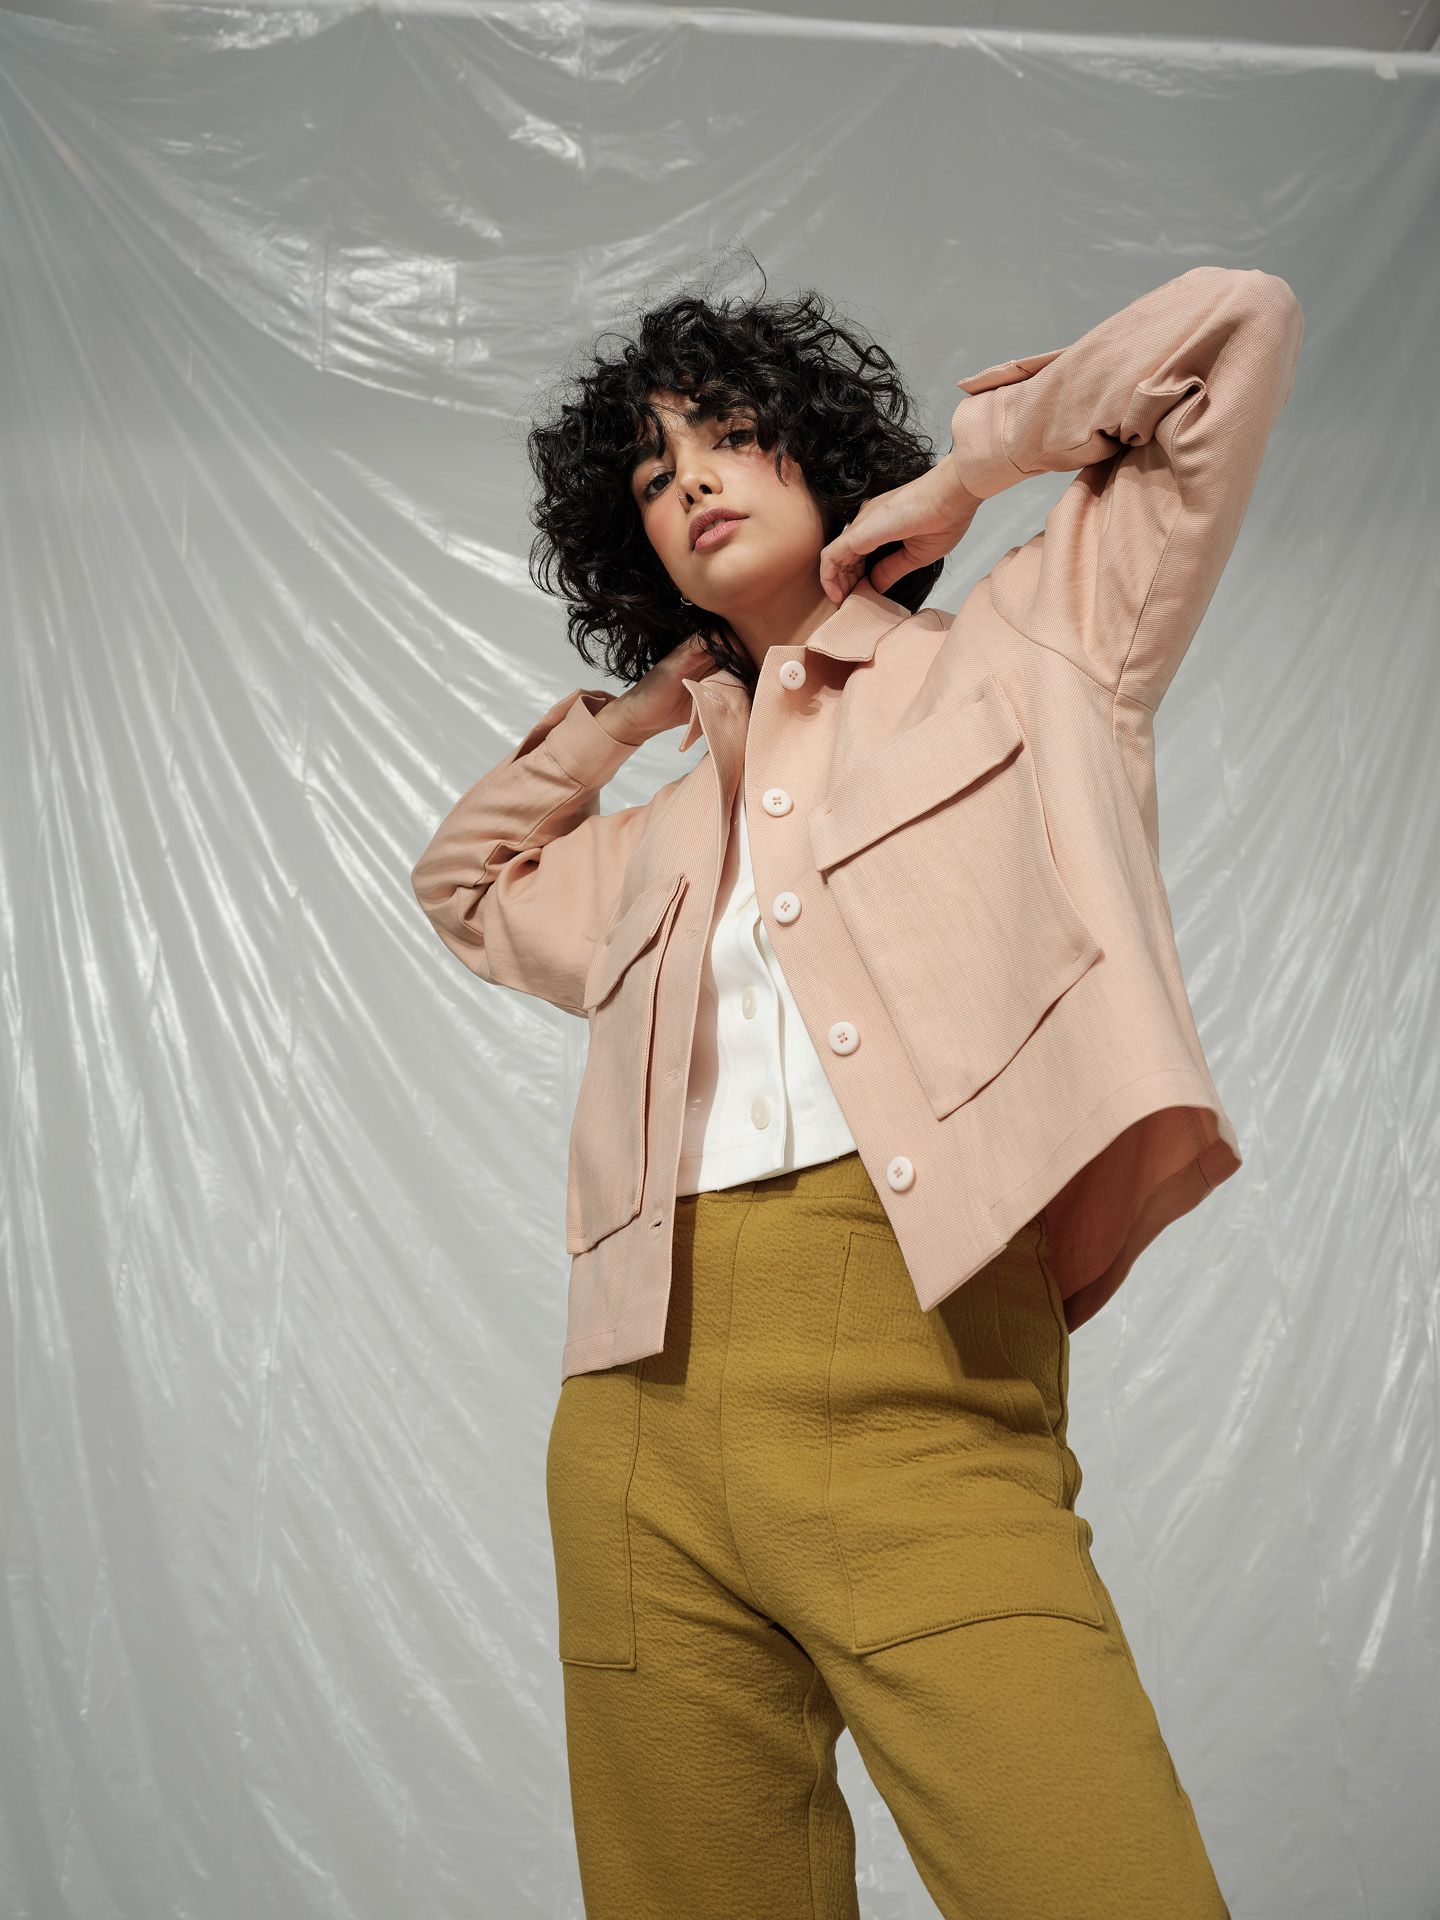 curly haired female model wearing soft pink jacket white tee shirt and mustard pants posing with arms up in the air looking at camera photographed by Maxyme G Delisle with artistic direction and styling by Studio TB